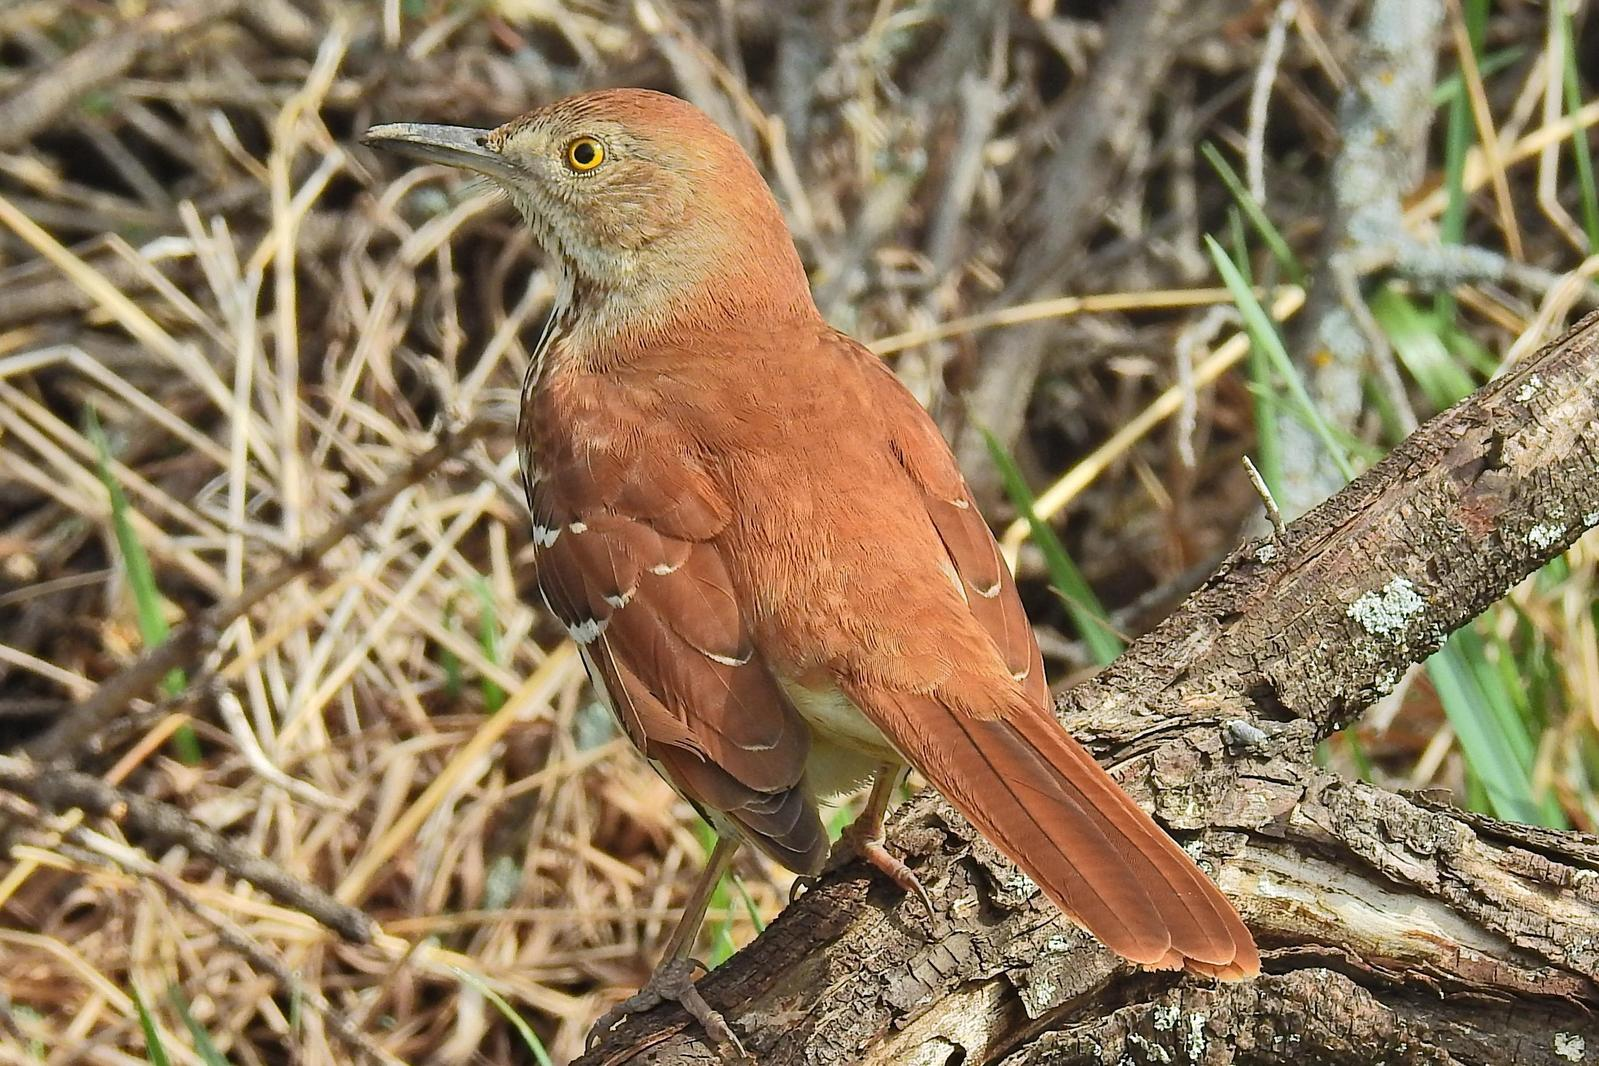 Brown Thrasher Photo by Enid Bachman